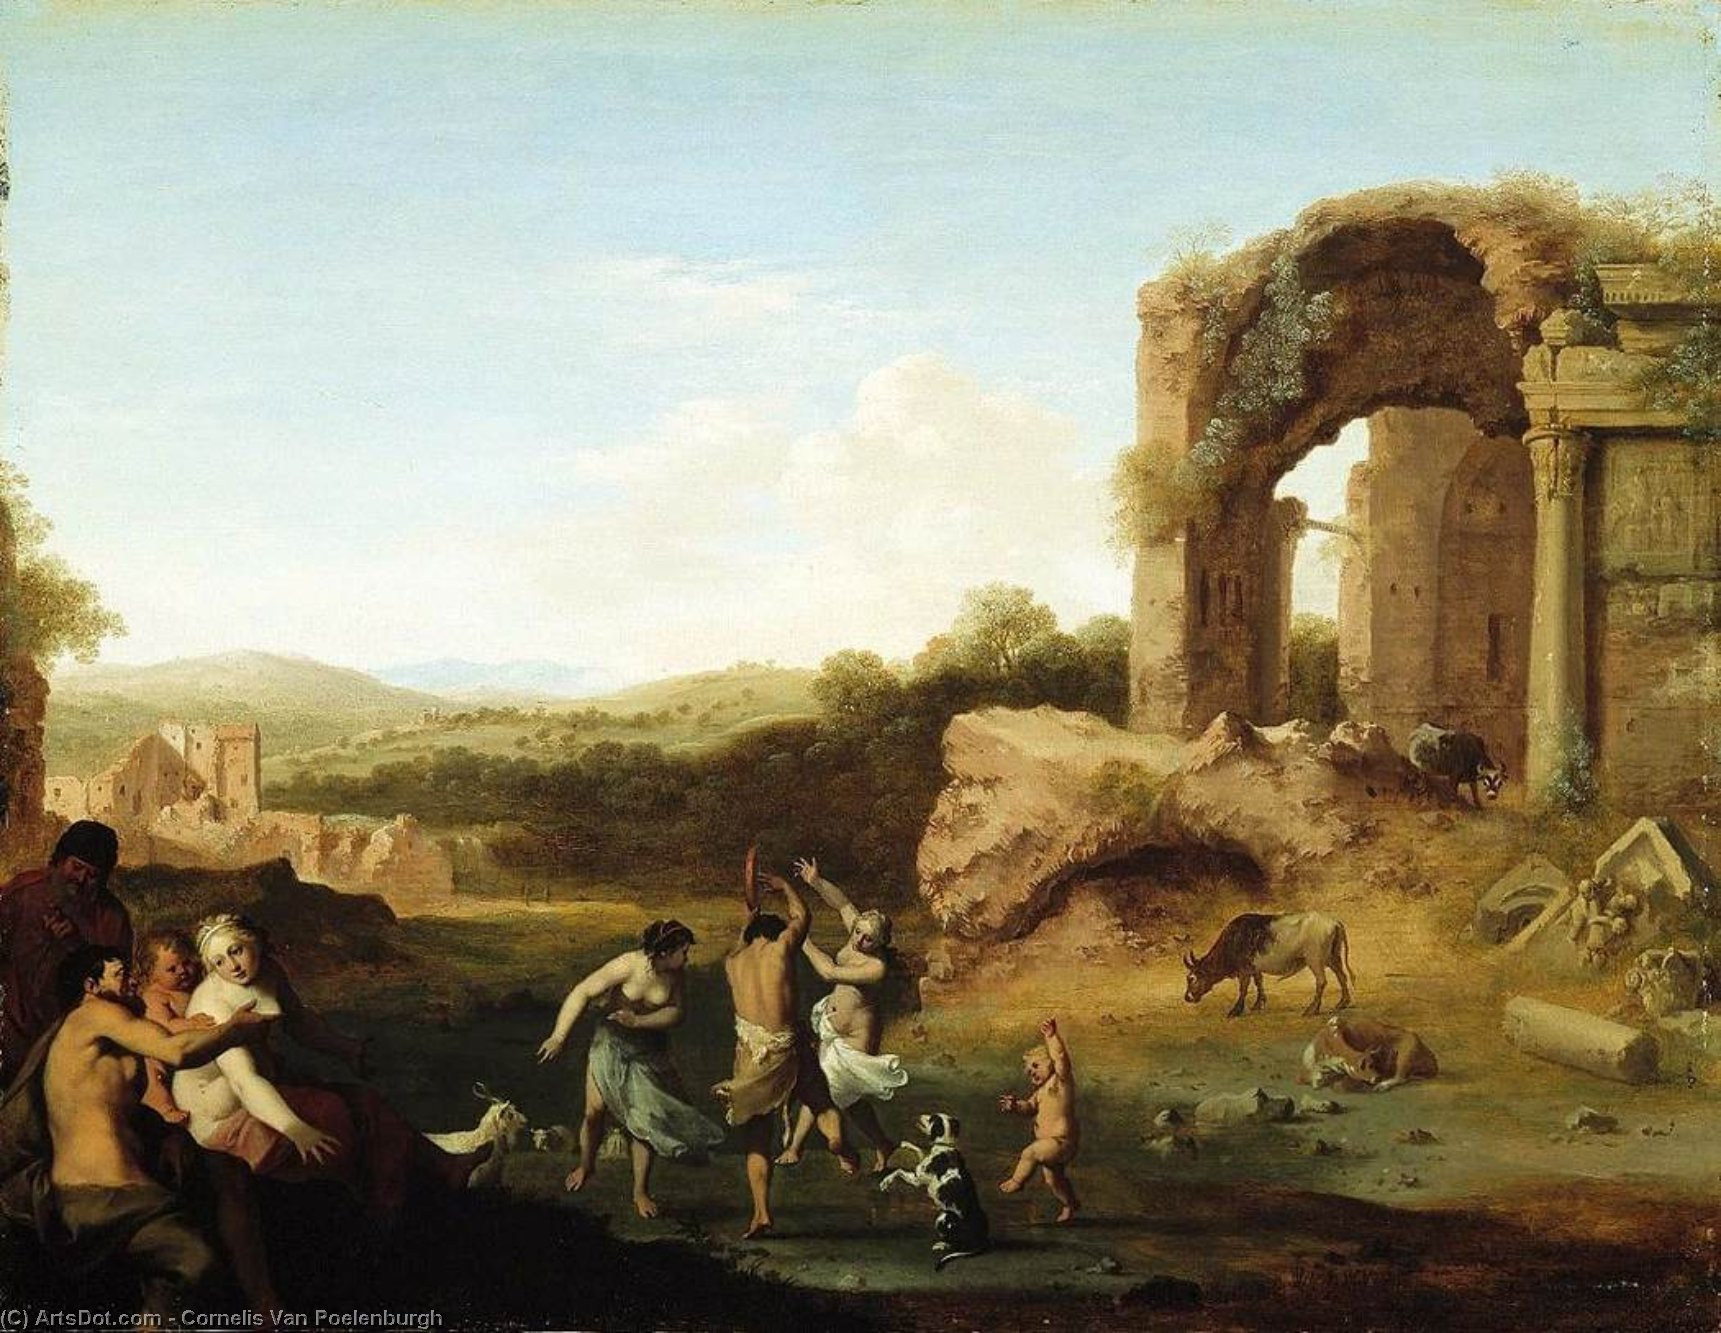 Figures Dancing near Ruin, Oil On Panel by Cornelis Van Poelenburgh (1595-1667, Netherlands)